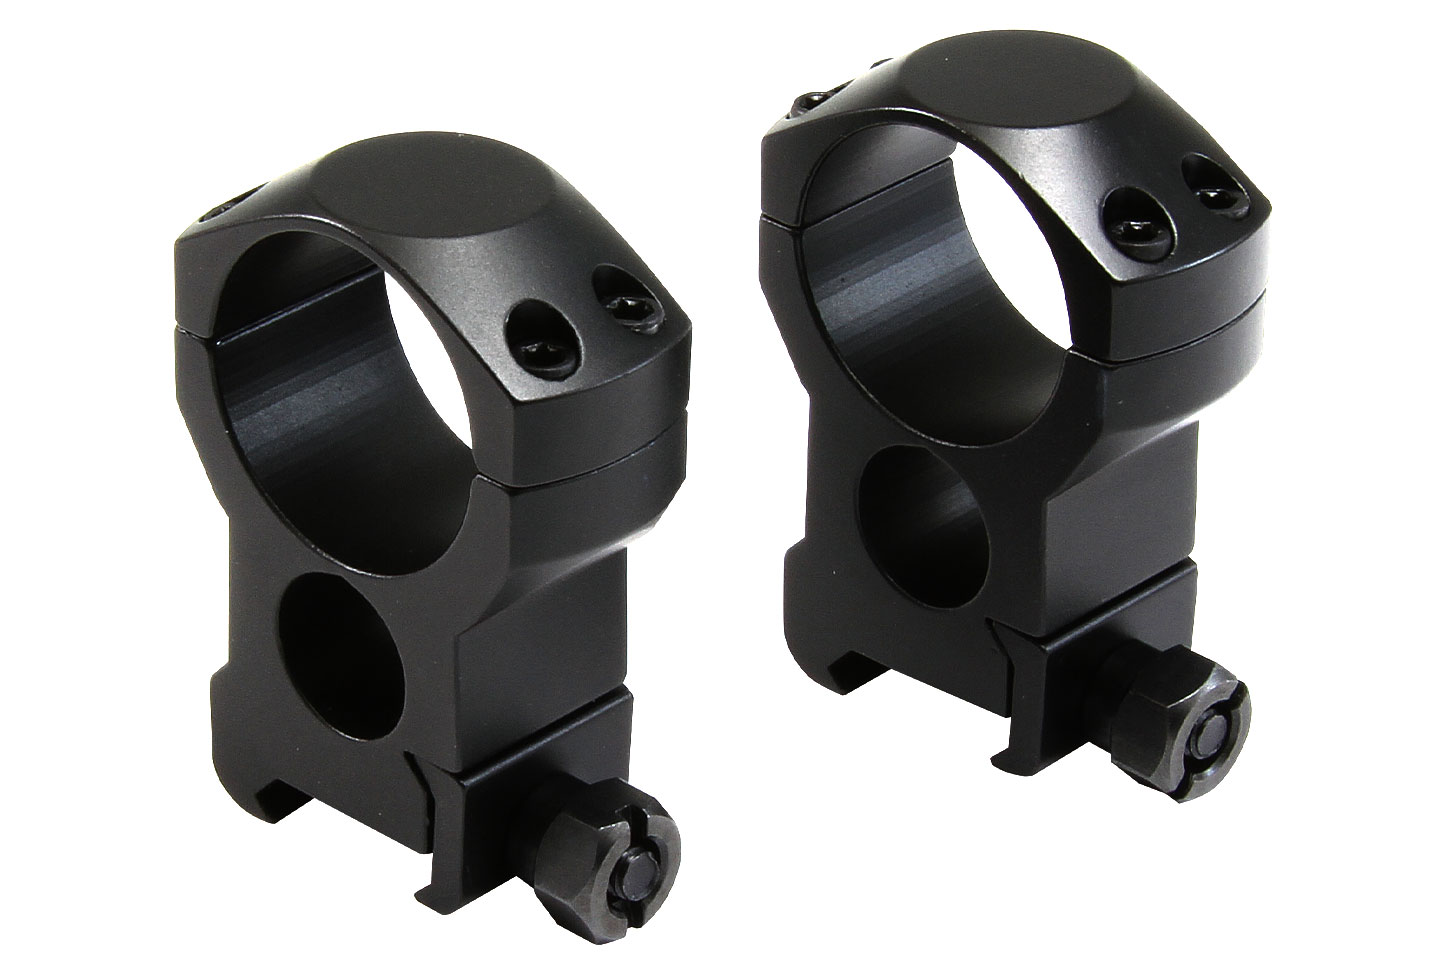 『Double Nut Mount High』が再入荷致しました!!